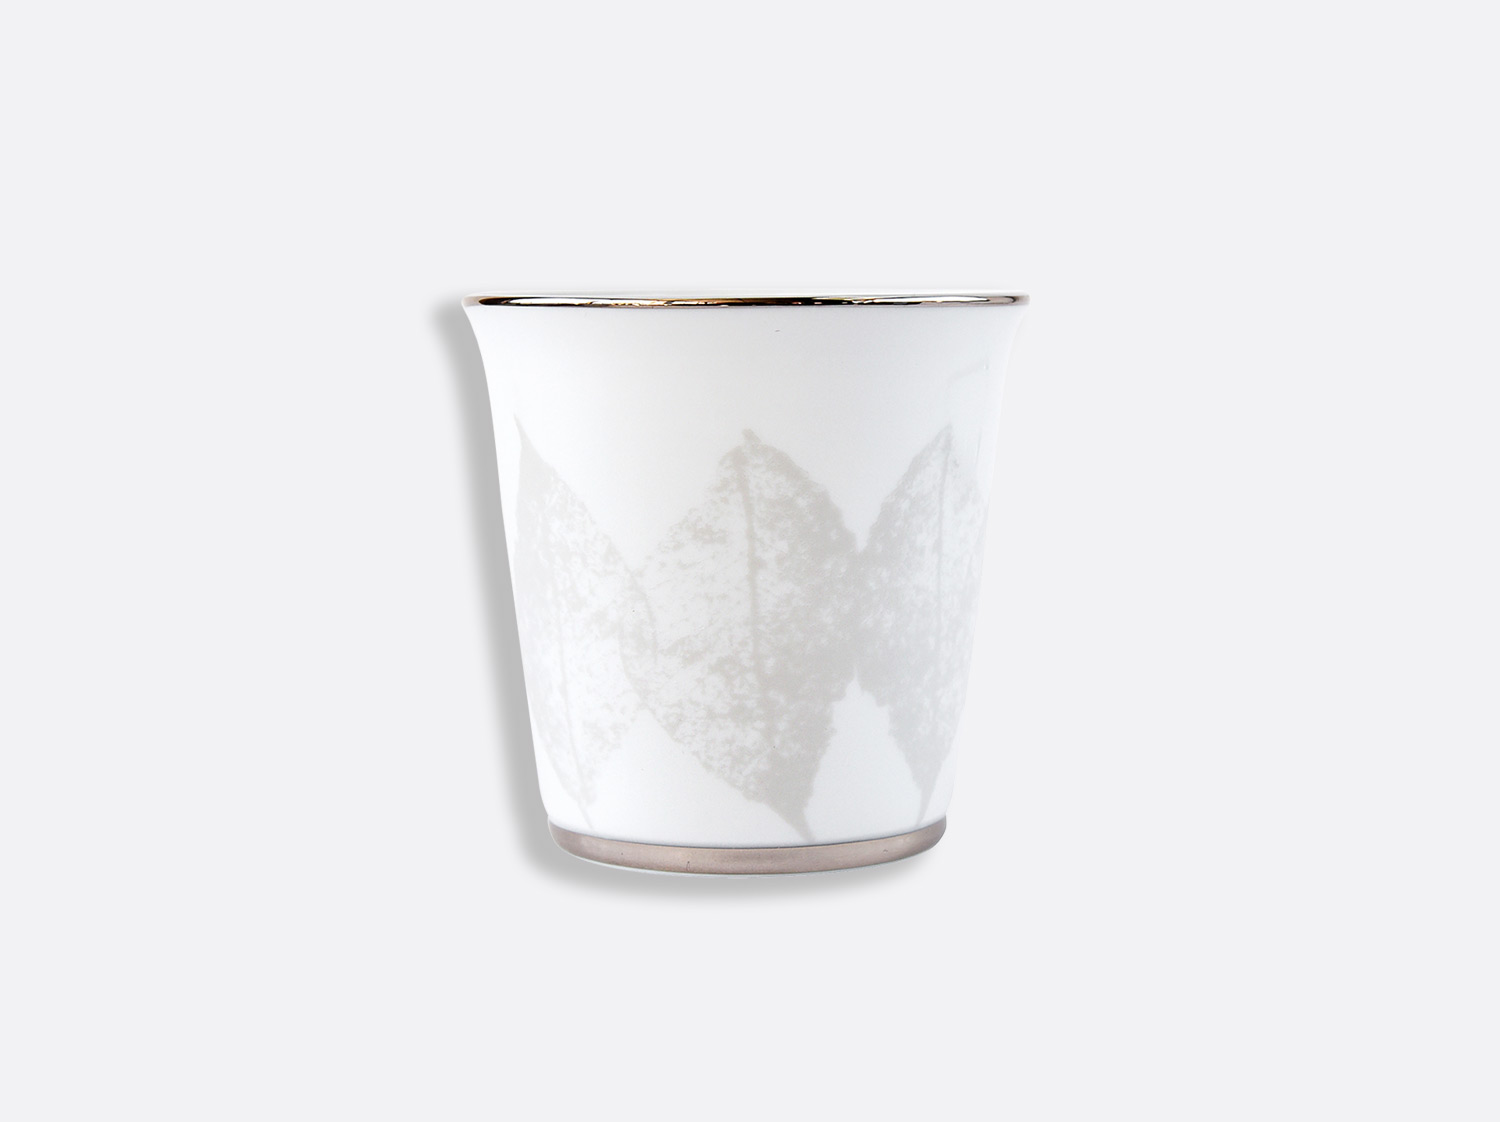 Pot 9 cm + bougie parfumée 200g en porcelaine de la collection Silva Bernardaud